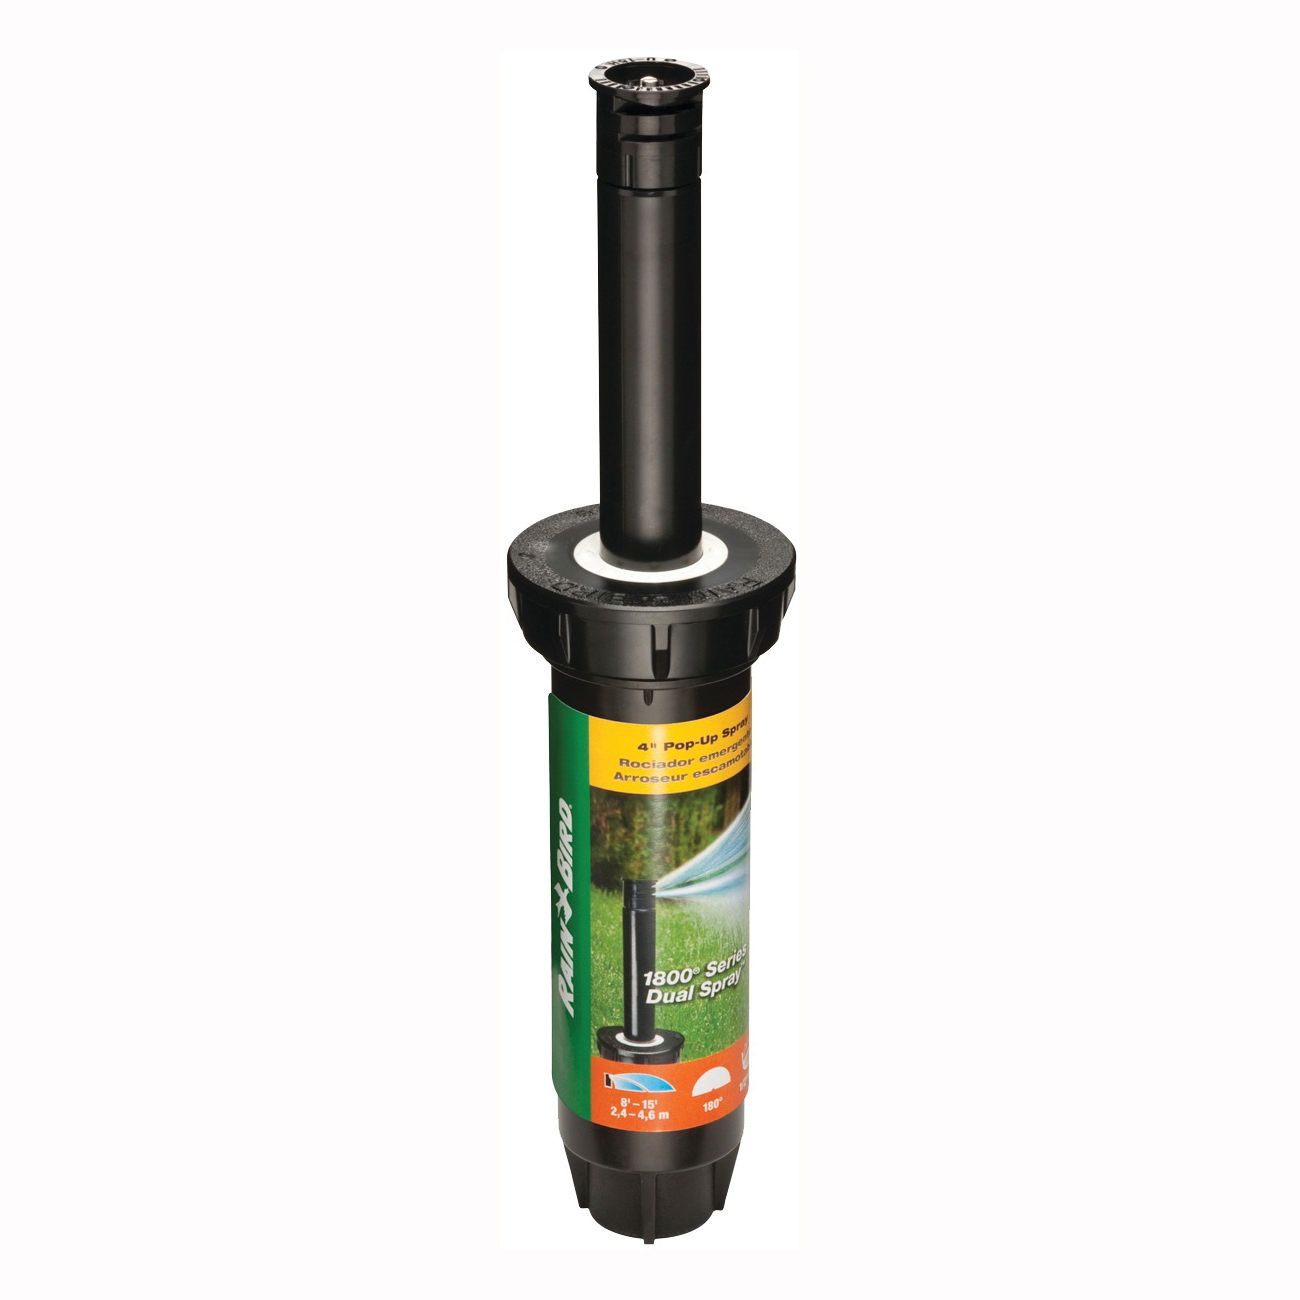 Picture of Rain Bird 1804HDS Spray Head Sprinkler, 1/2 in Connection, FNPT, Plastic